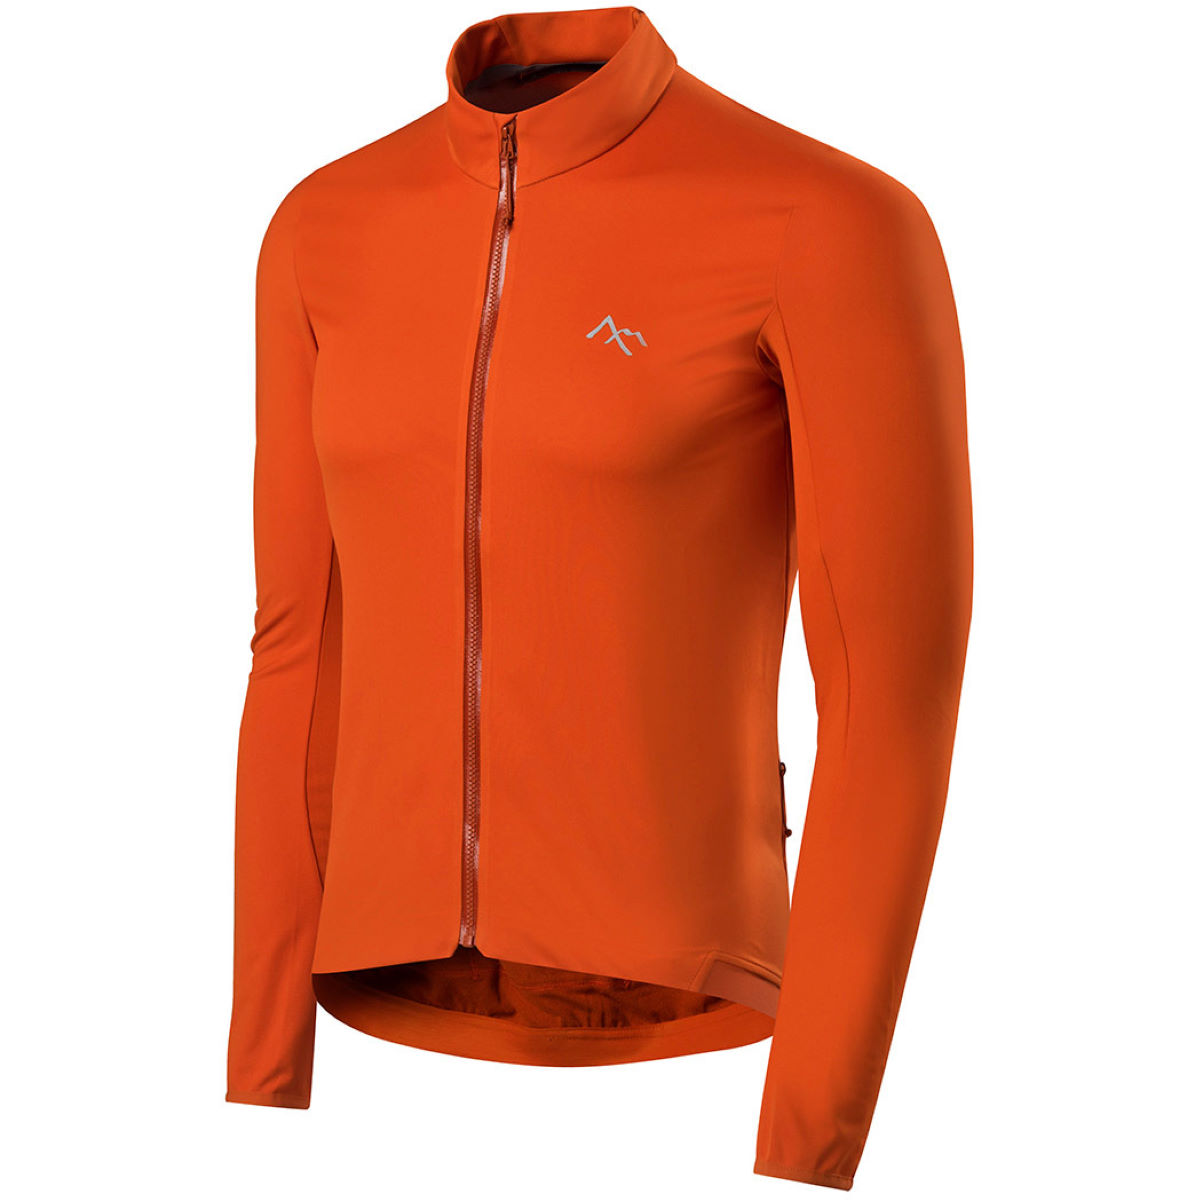 Maillot 7Mesh Synergy (manches longues) - 2XL Ember